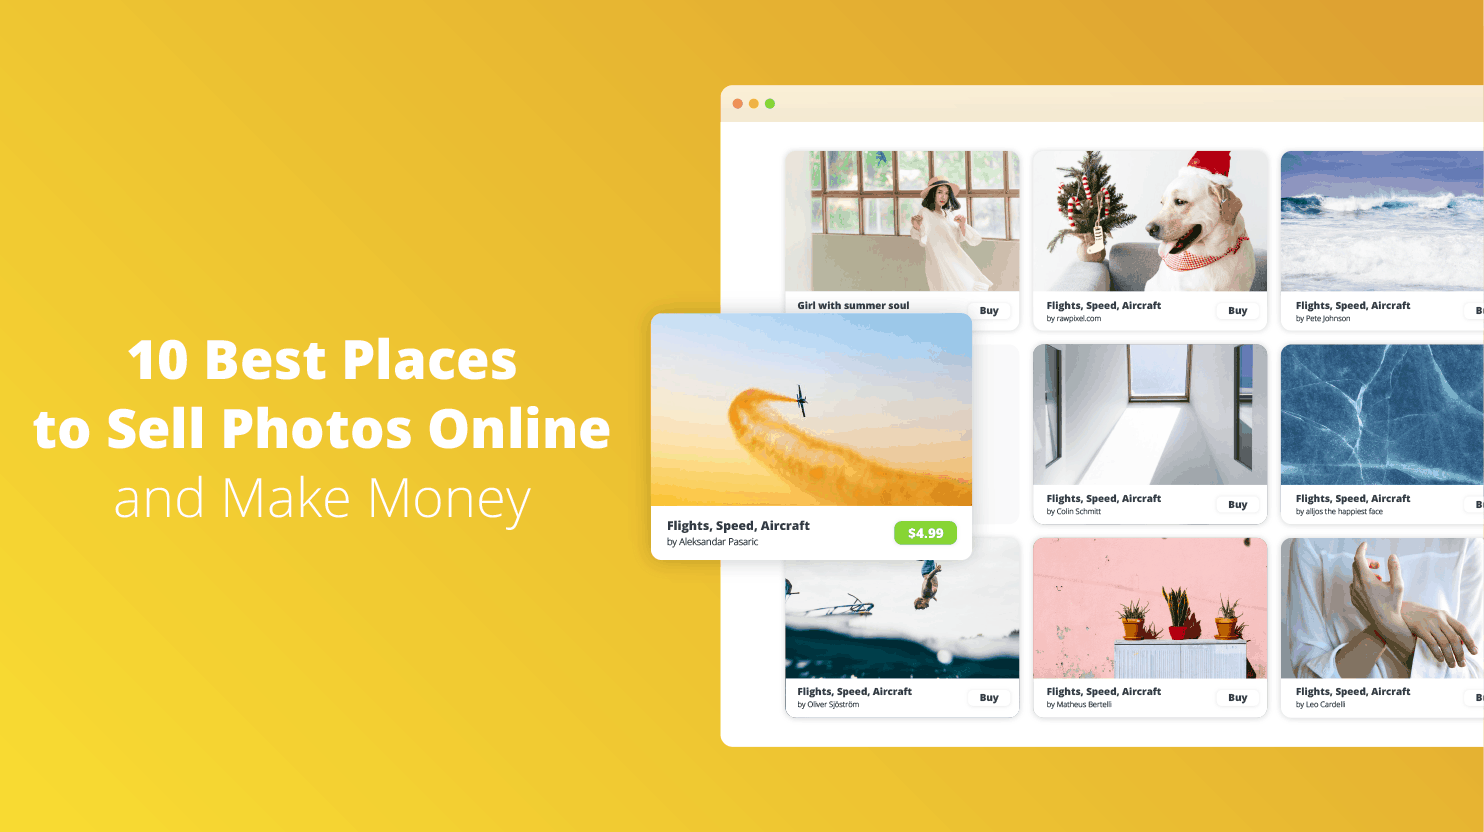 10 Best places to sell photos online